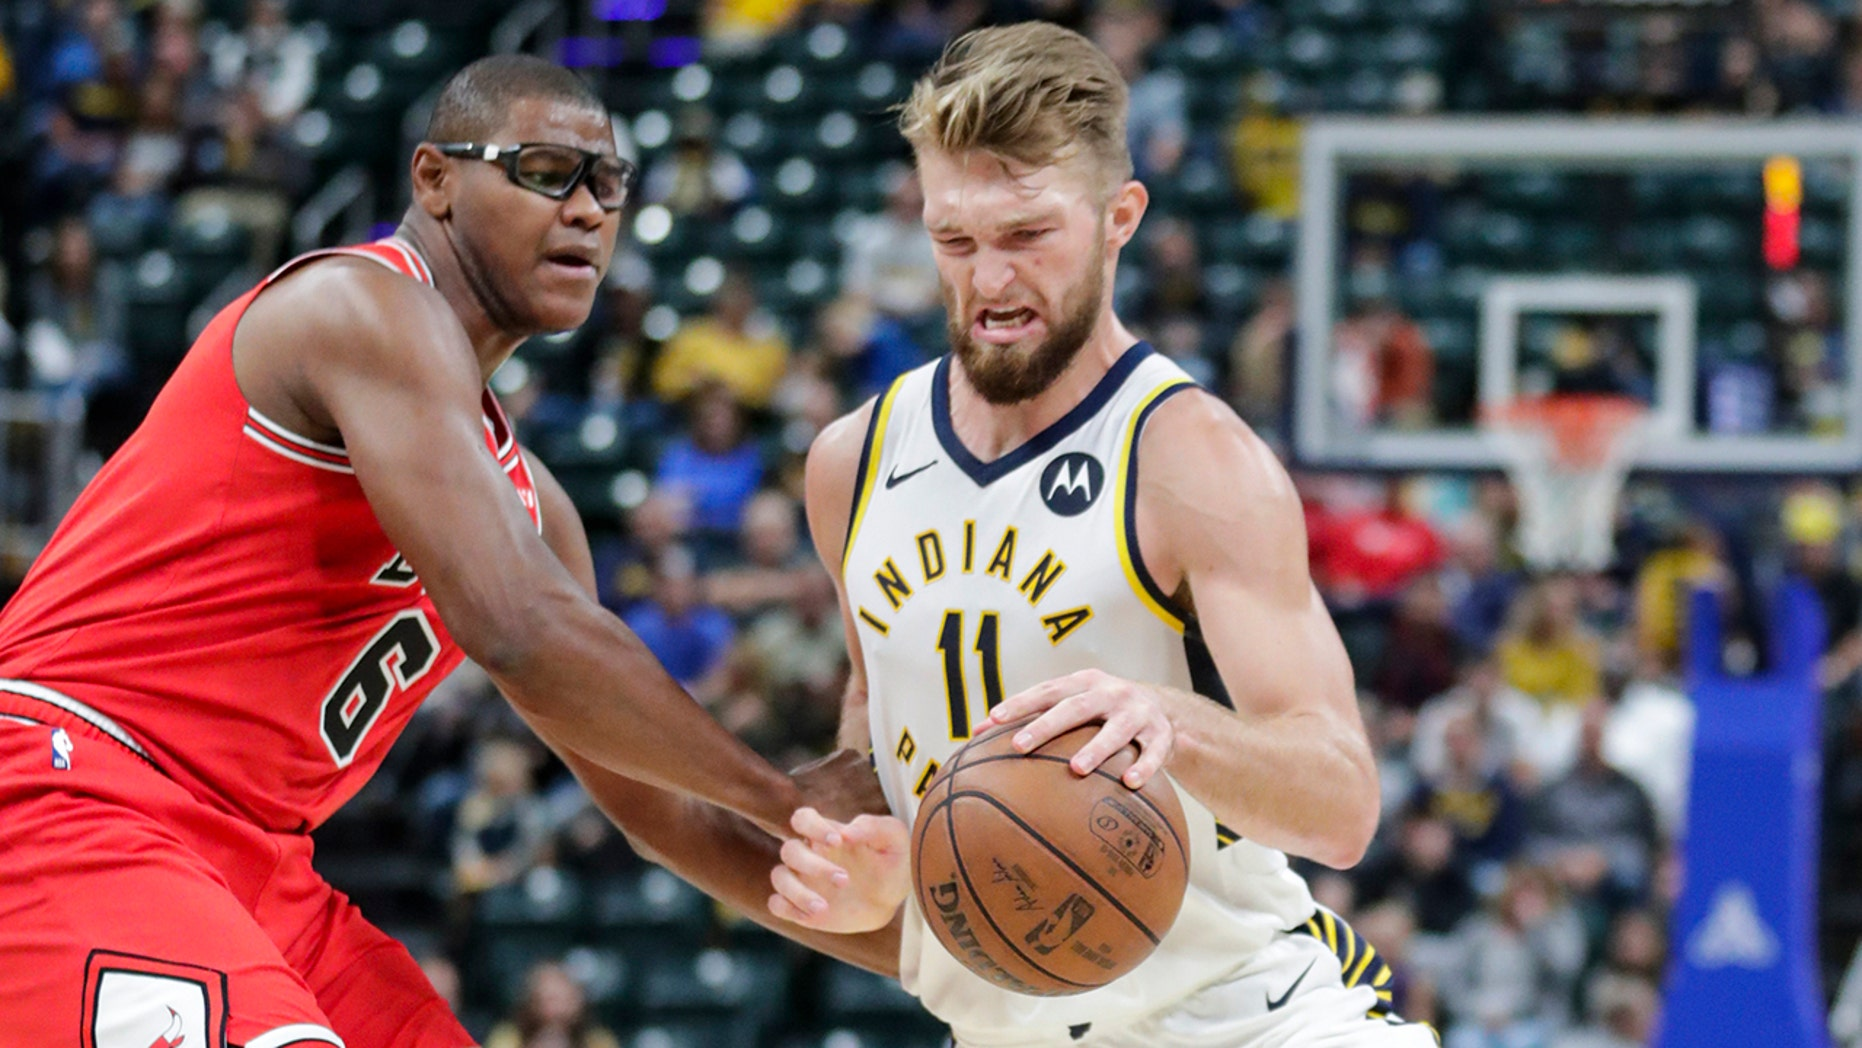 Indiana Pacers forward Domantas Sabonis (11) drives on Chicago Bulls forward Cristiano Felicio (6) during the first half of an NBA preseason basketball game in Indianapolis, Friday, Oct. 11, 2019. (AP Photo/Michael Conroy)